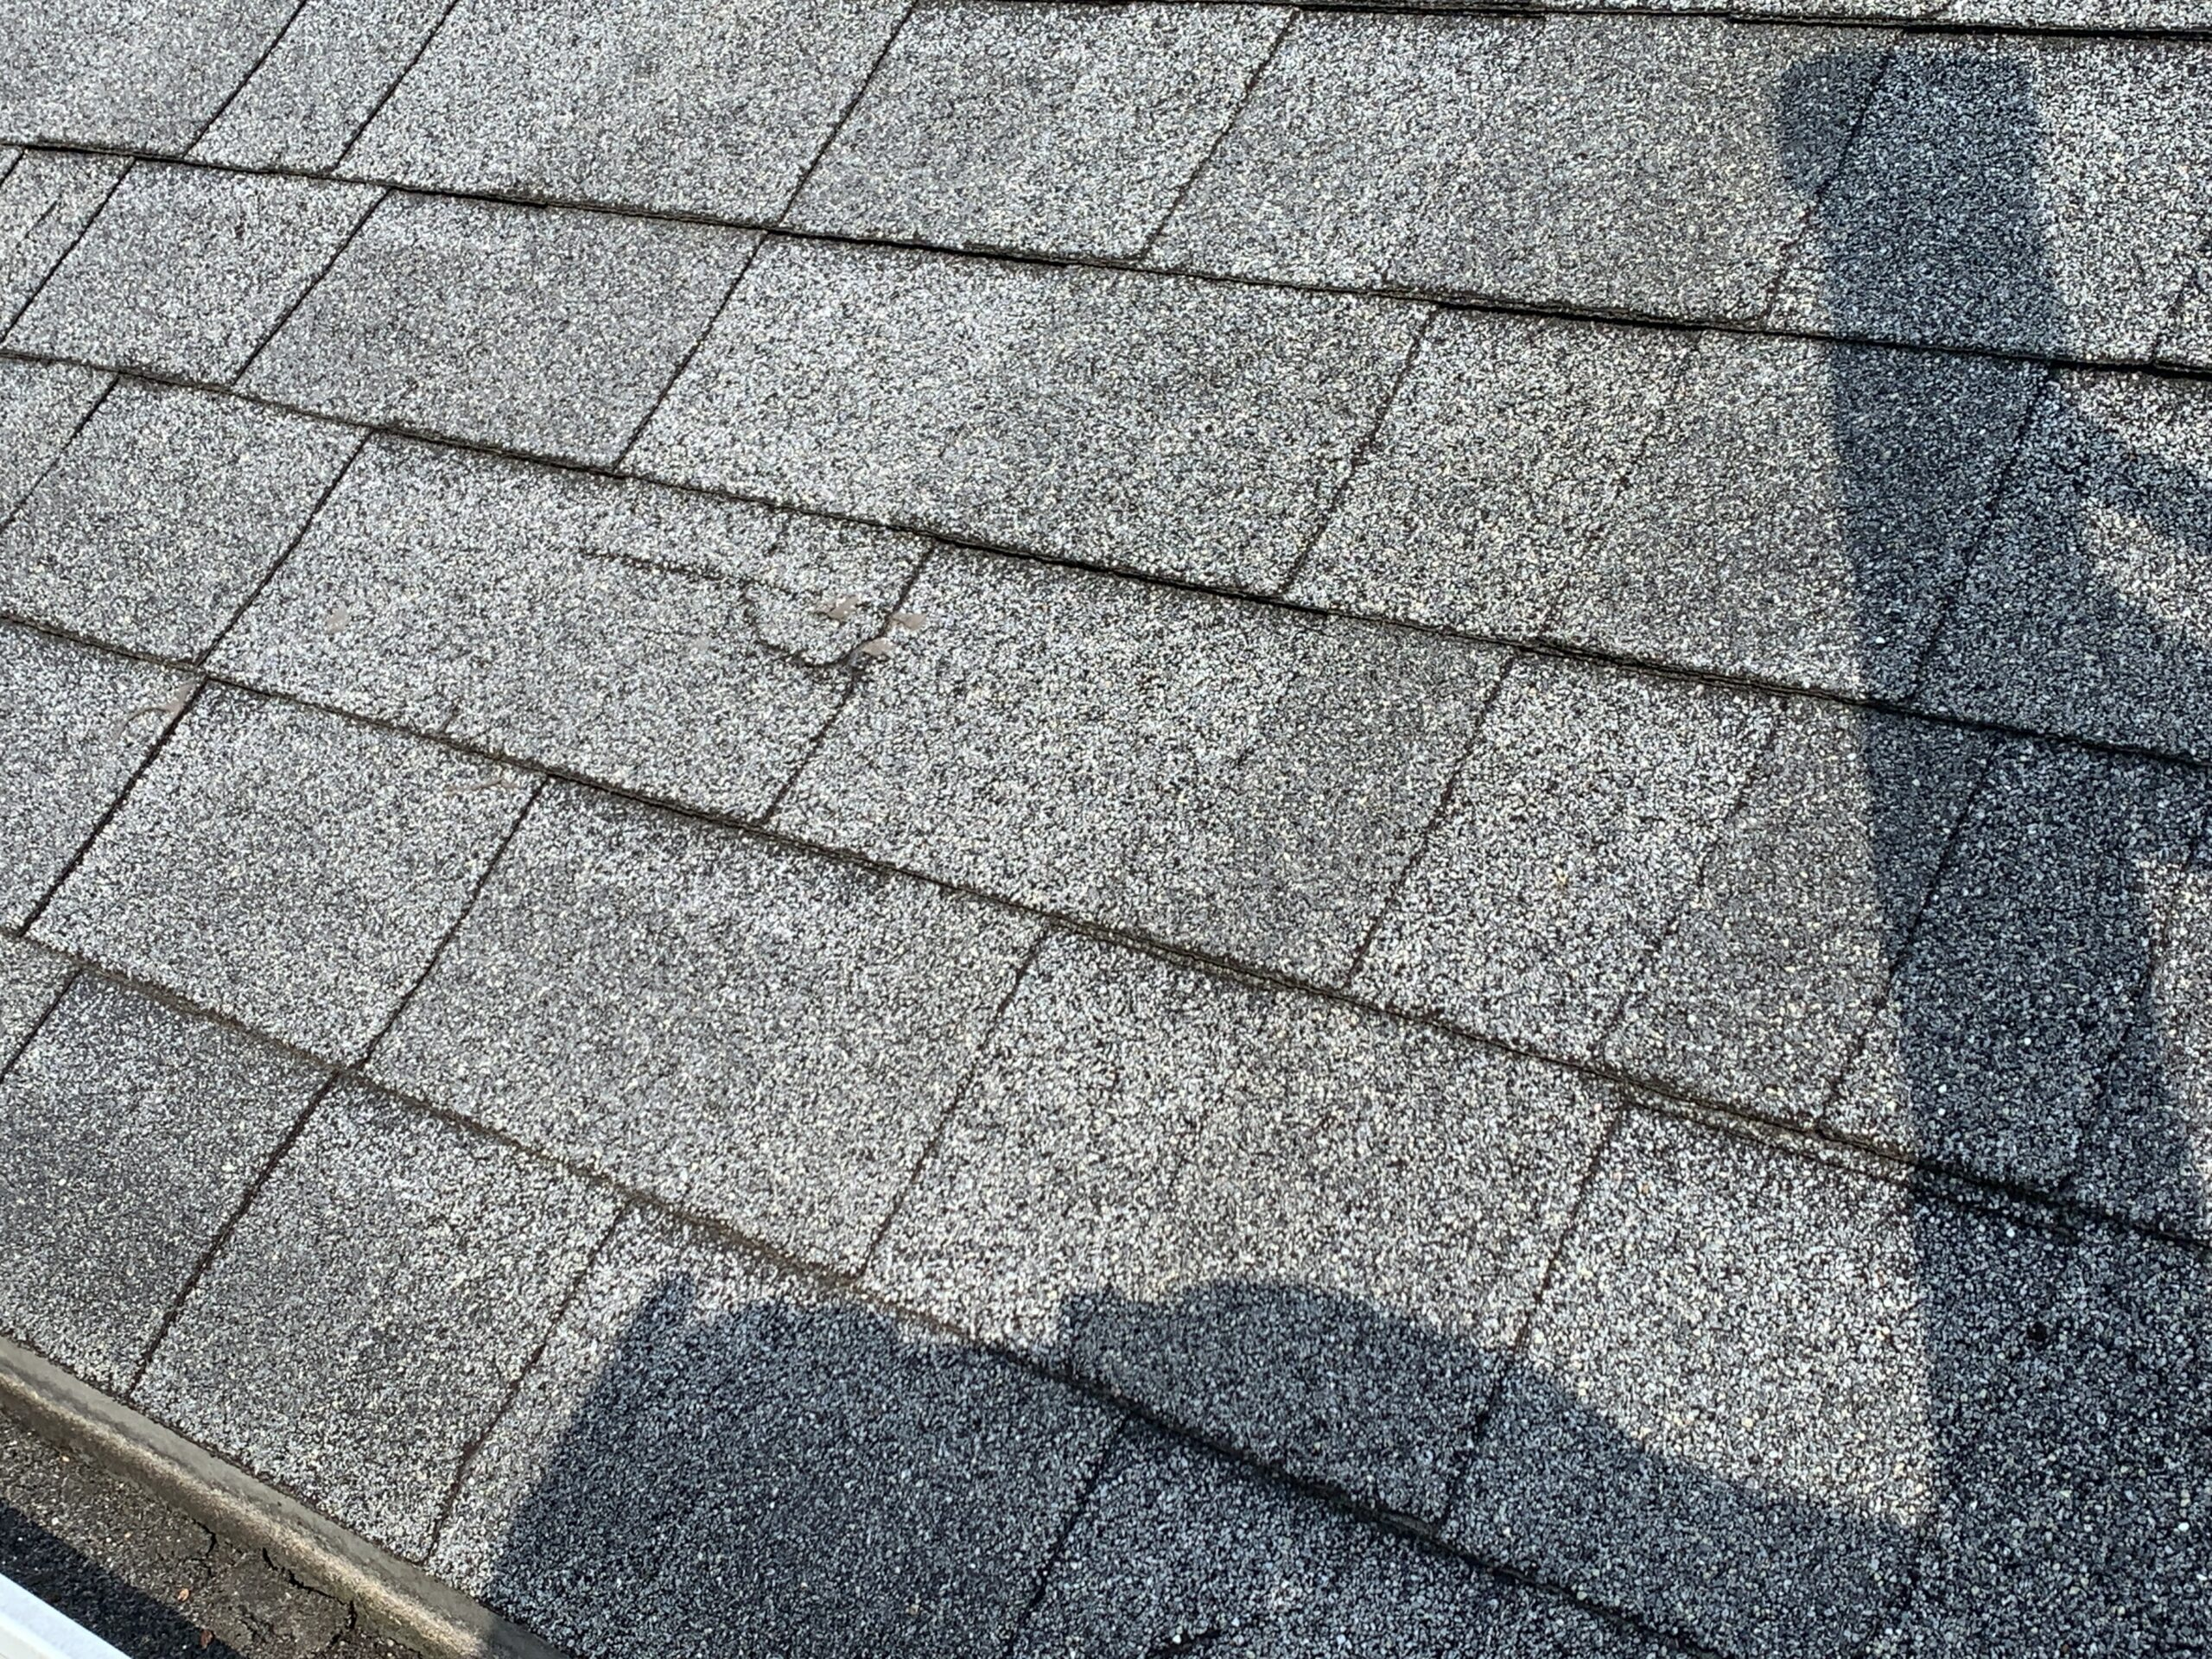 this shingle appears to have some damages from wind